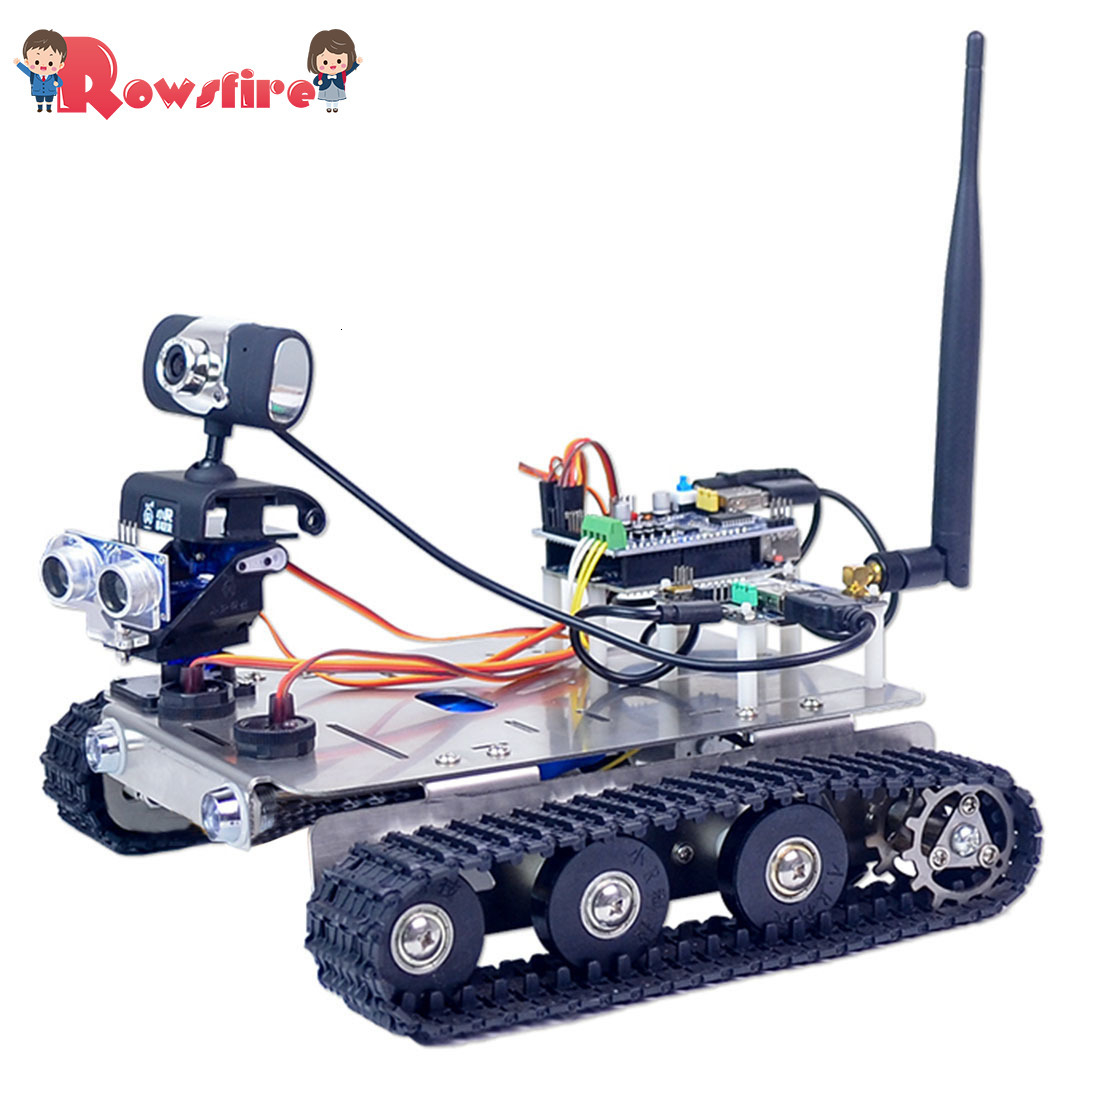 Programmable Robot DIY Wifi Stainless Steel Chassis Track Tank Car With Graphic Programming XR BLOCK Linux Standard Version